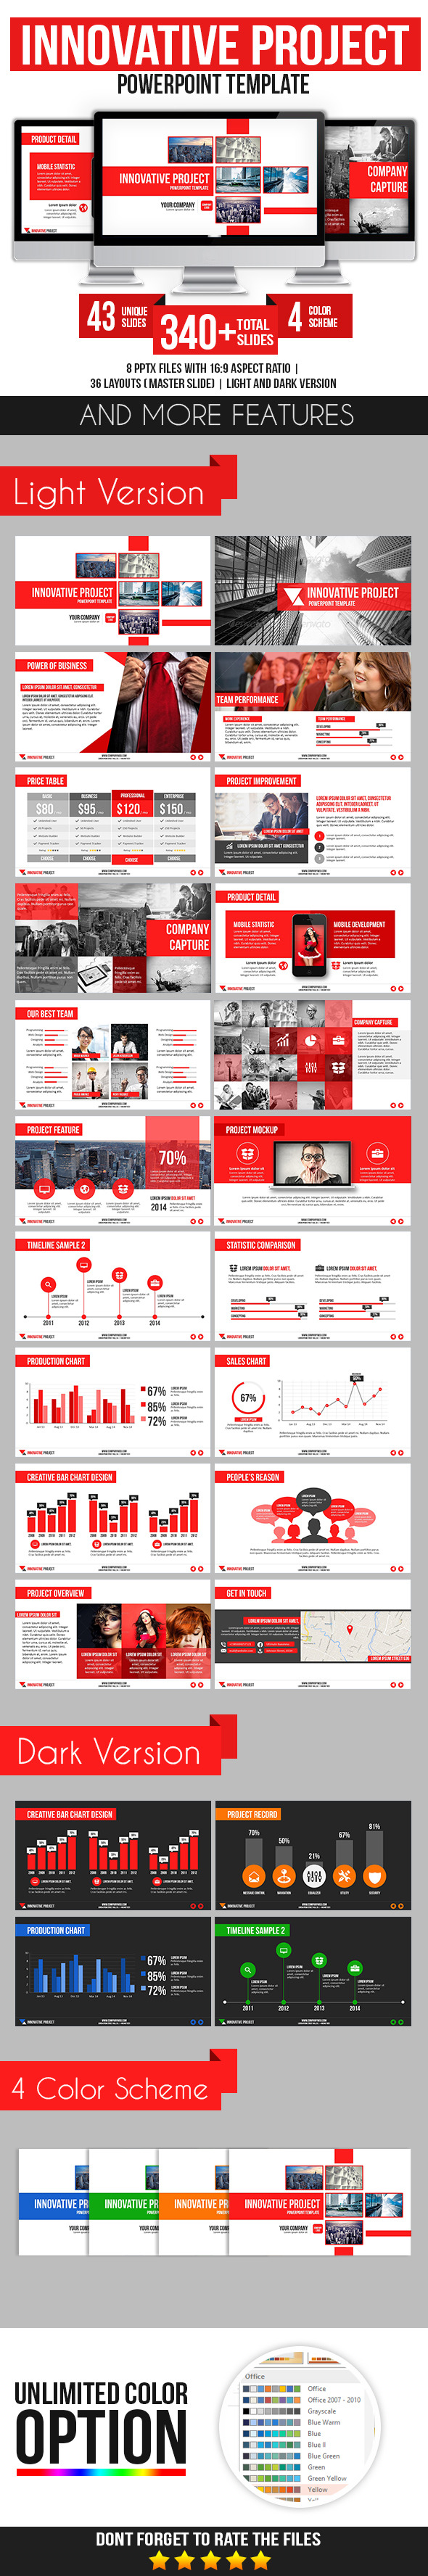 Innovative Project - Business PowerPoint Templates